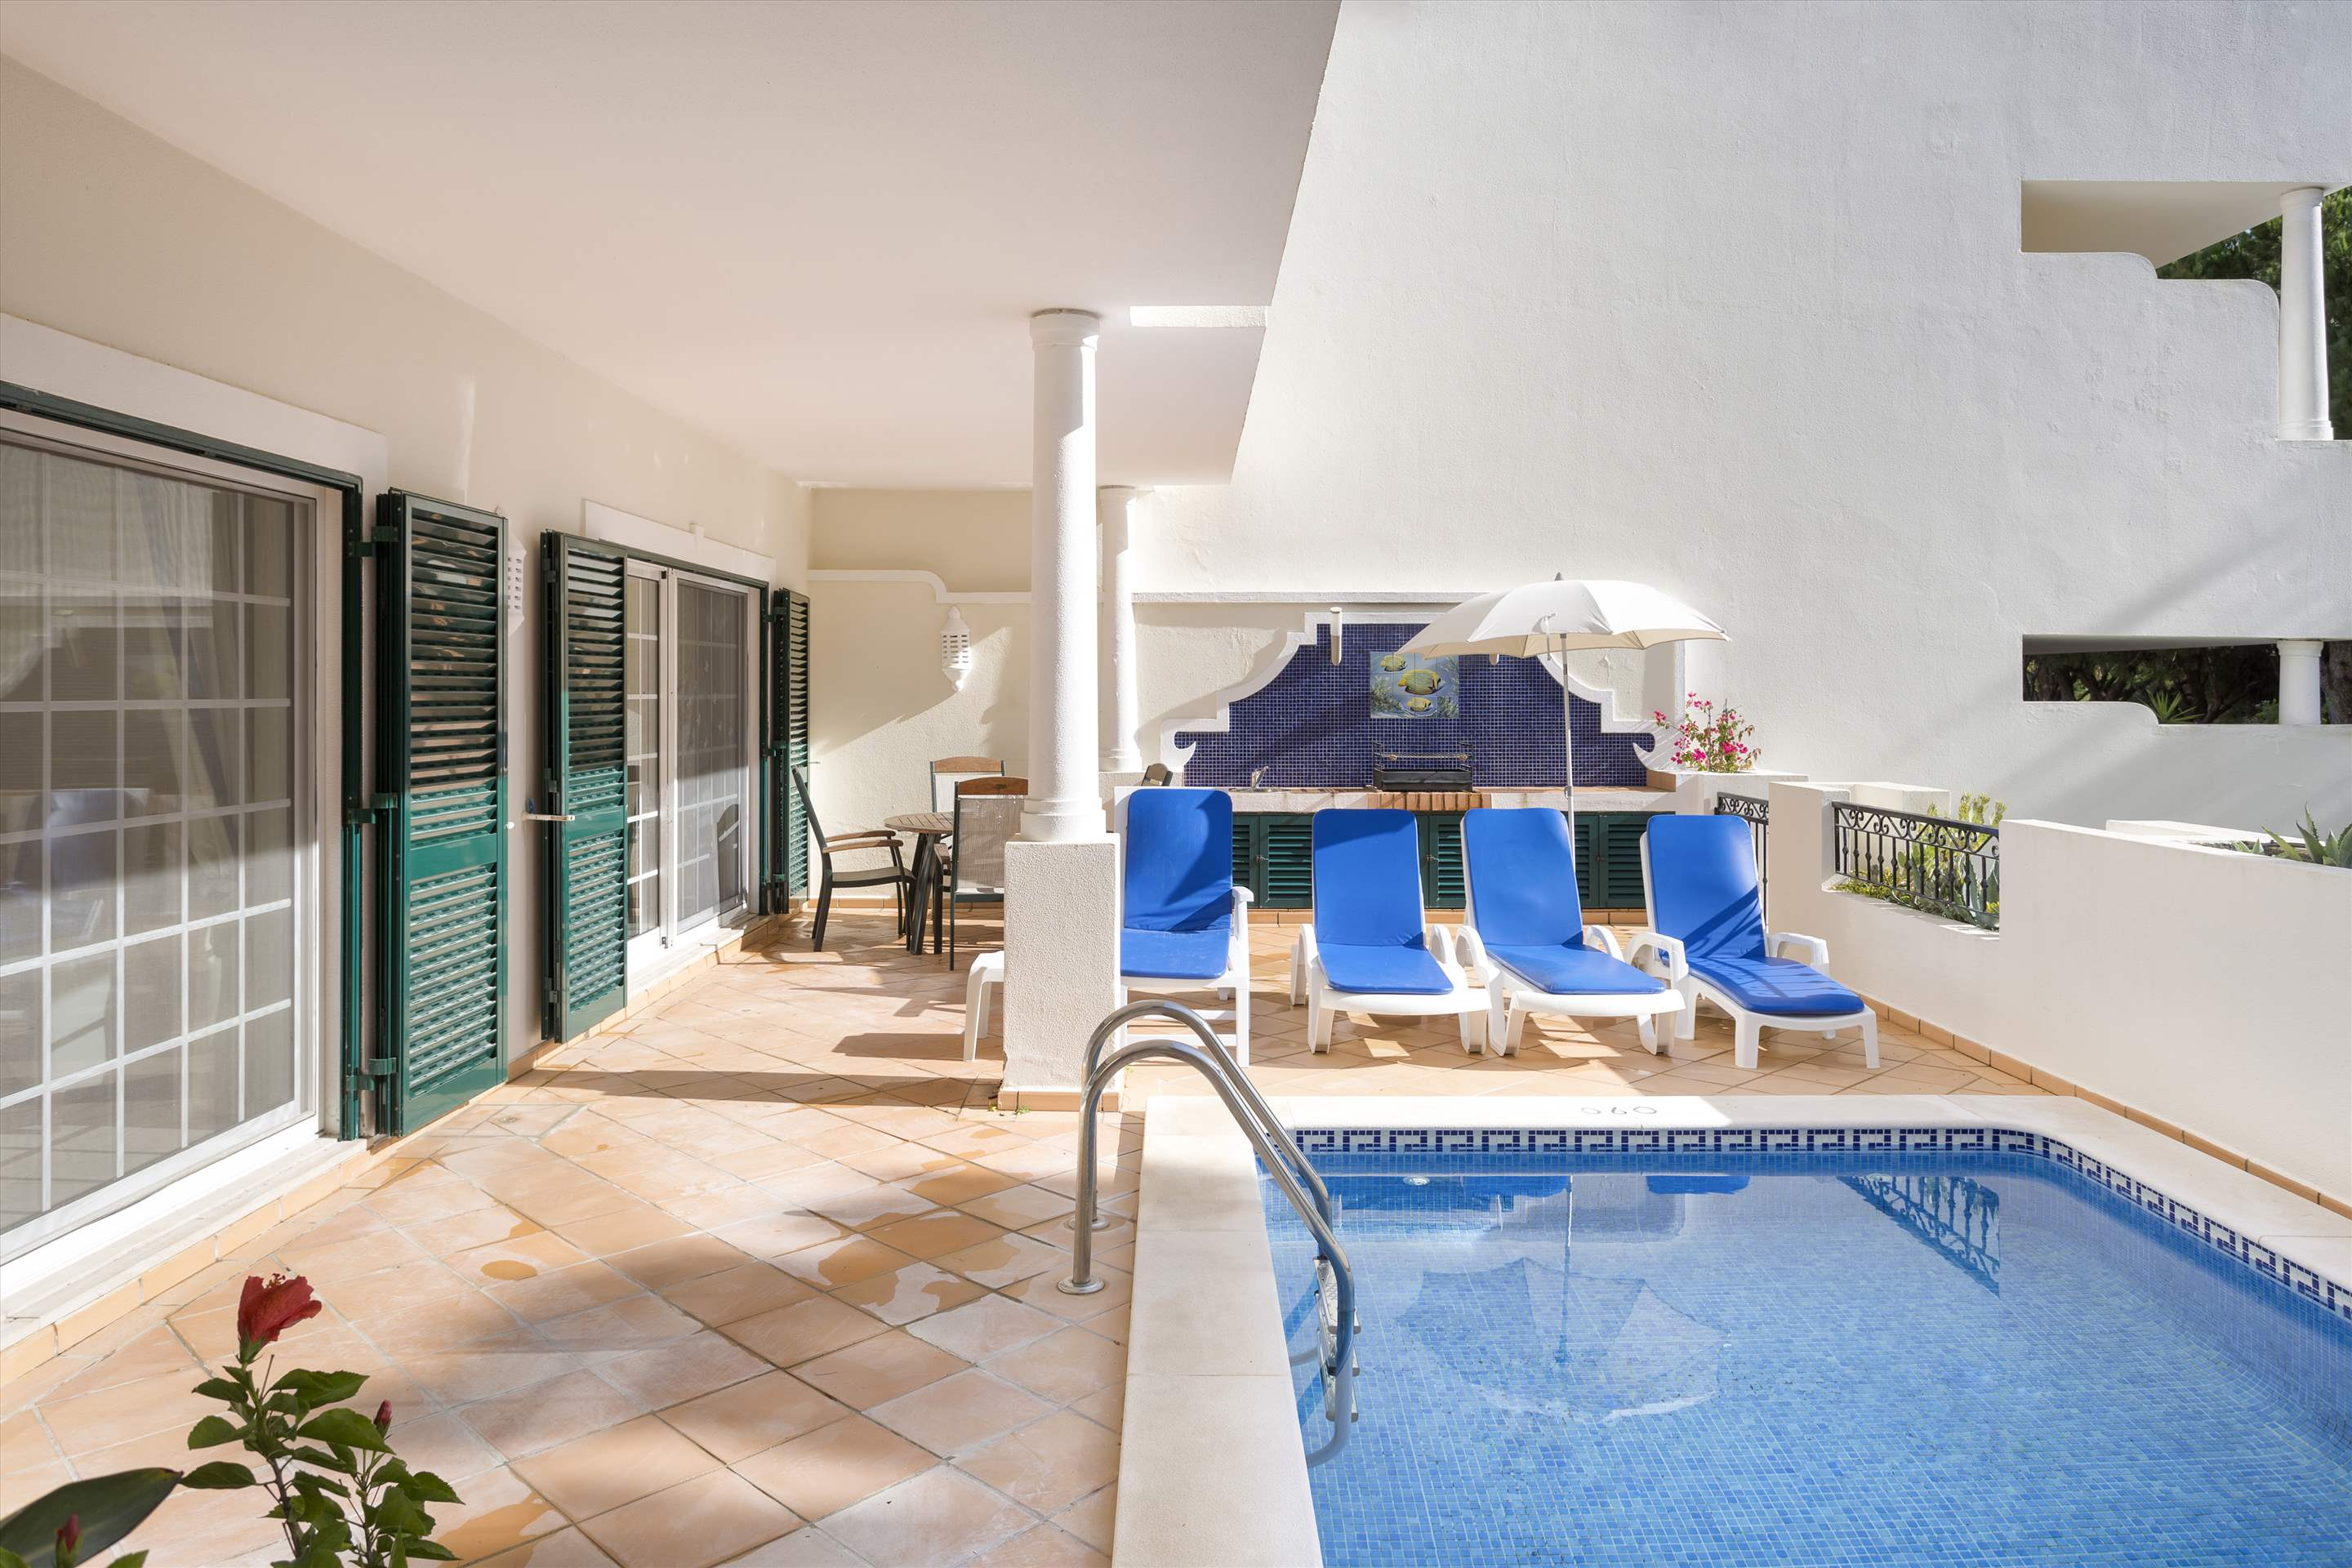 Apt 983A, 2 bedroom apartment in Vale do Lobo, Algarve Photo #7